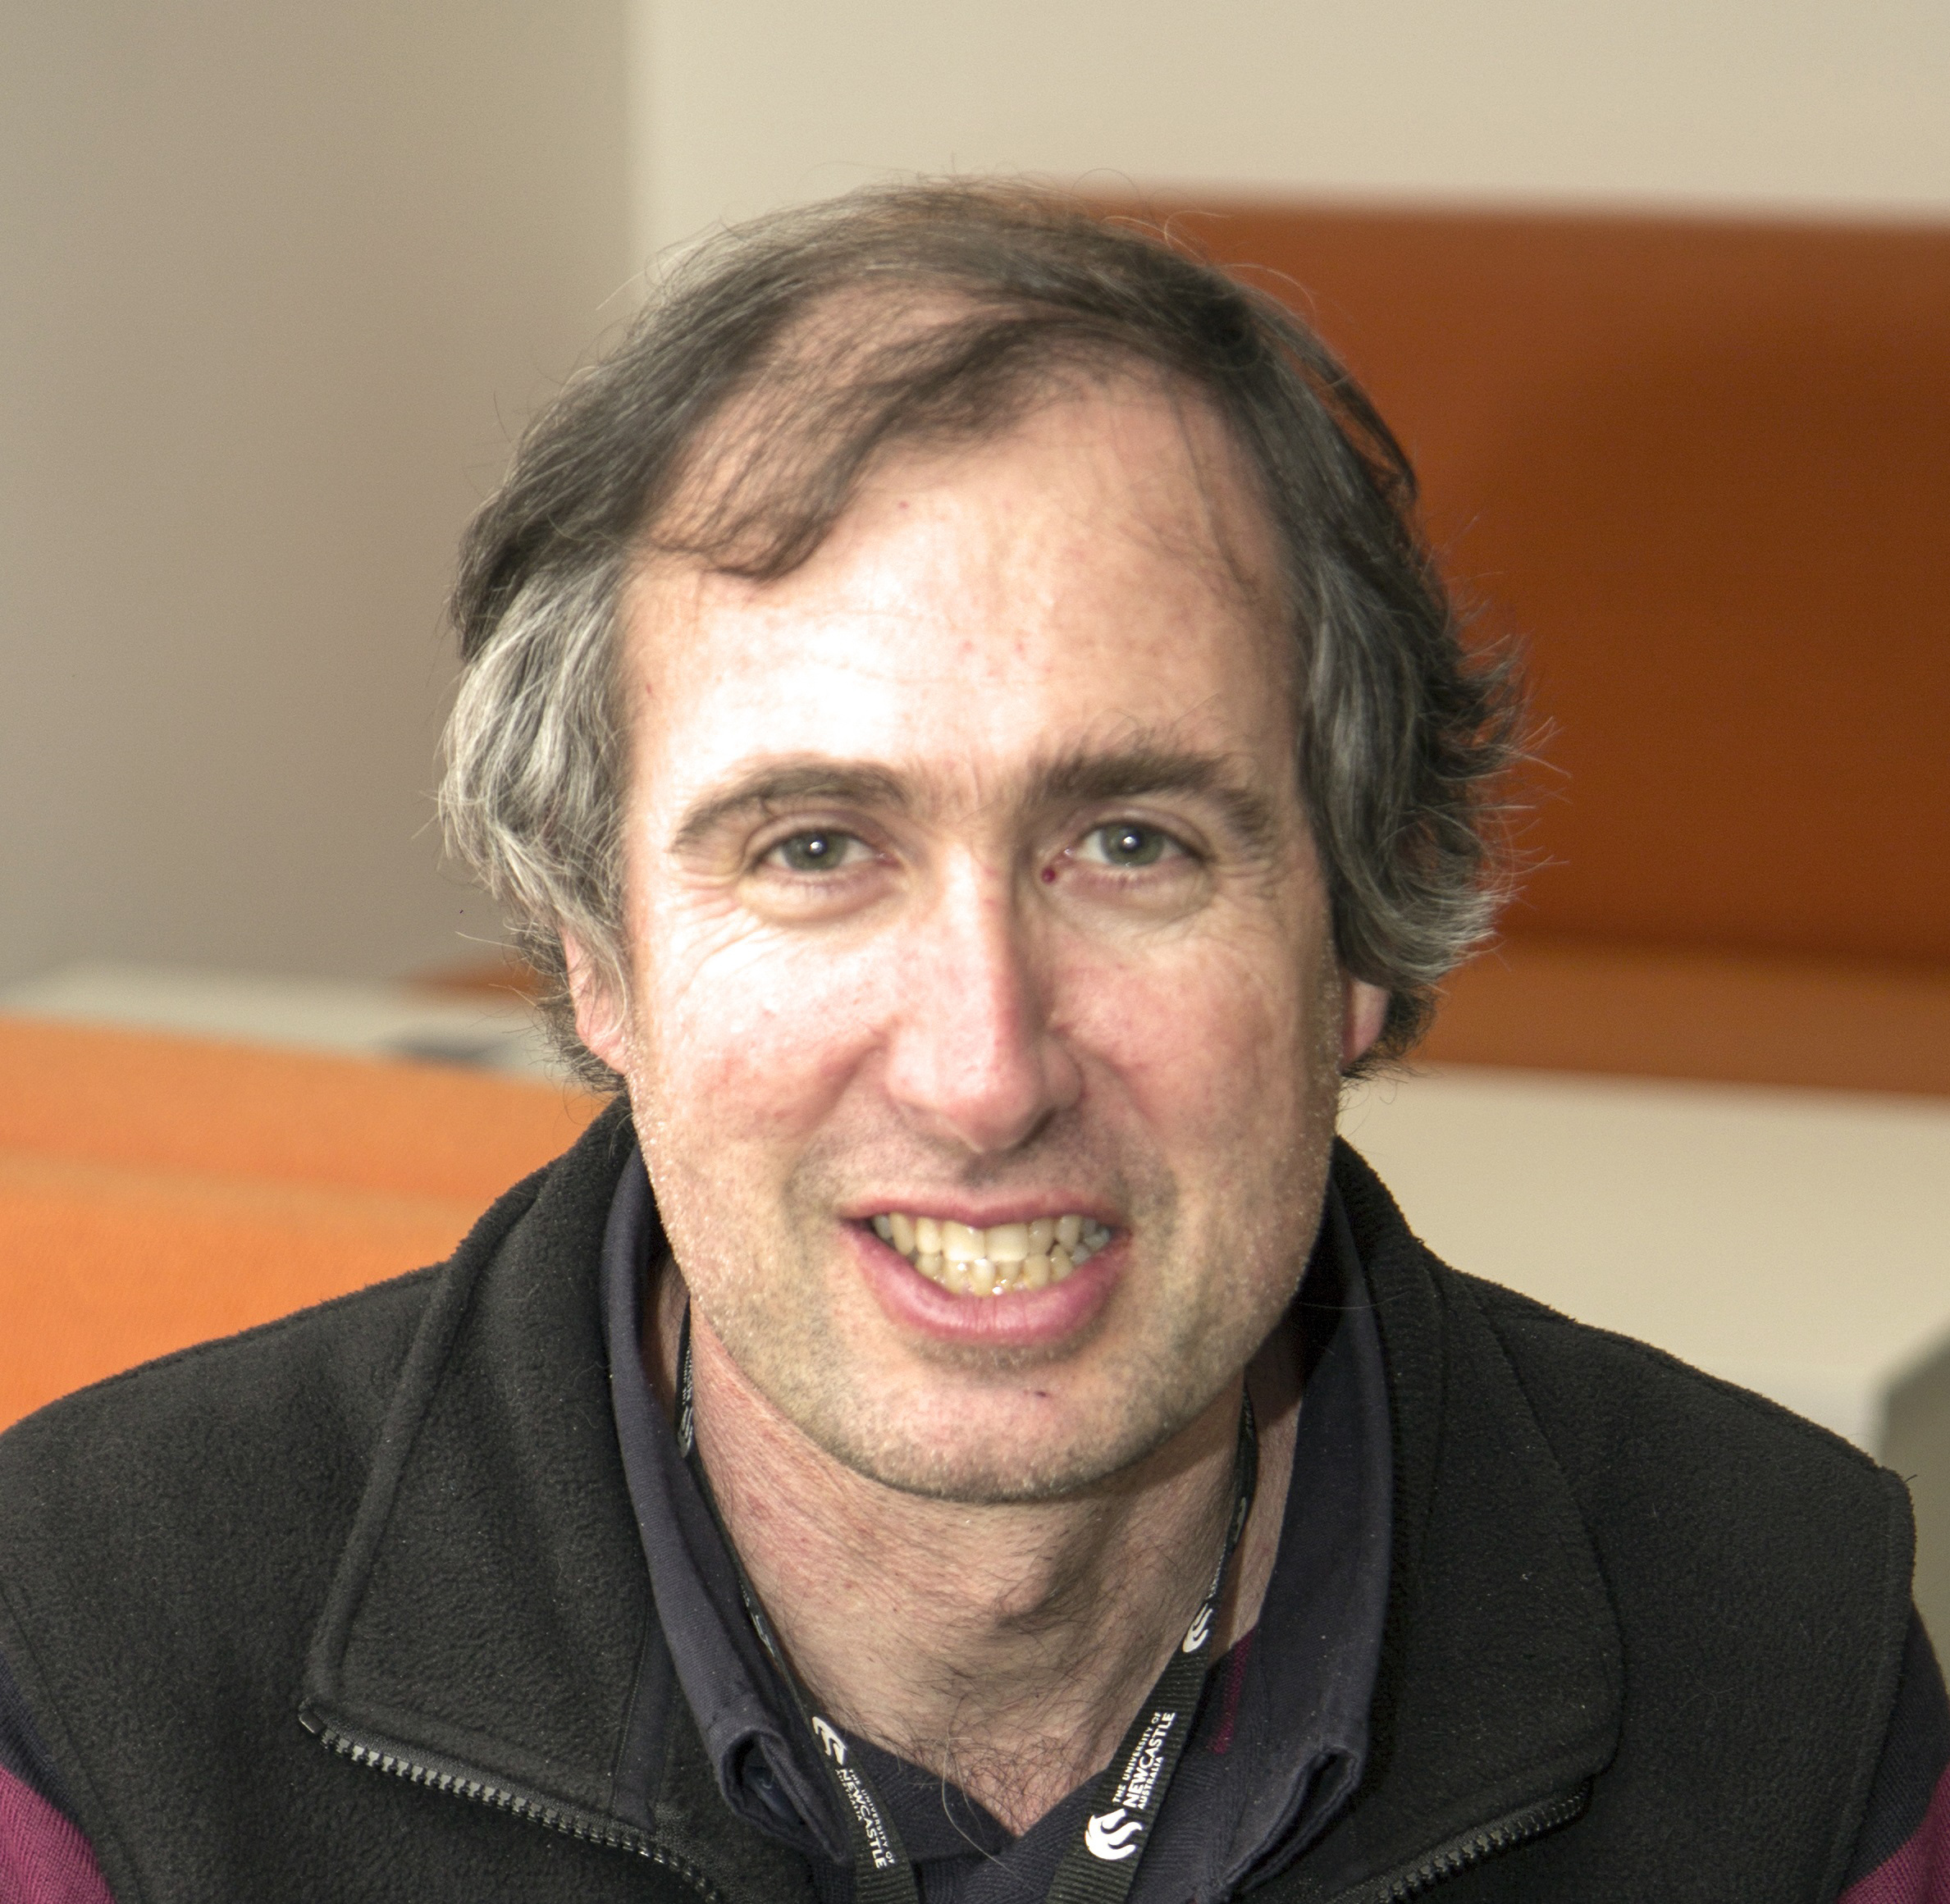 Dr Peter Galettis